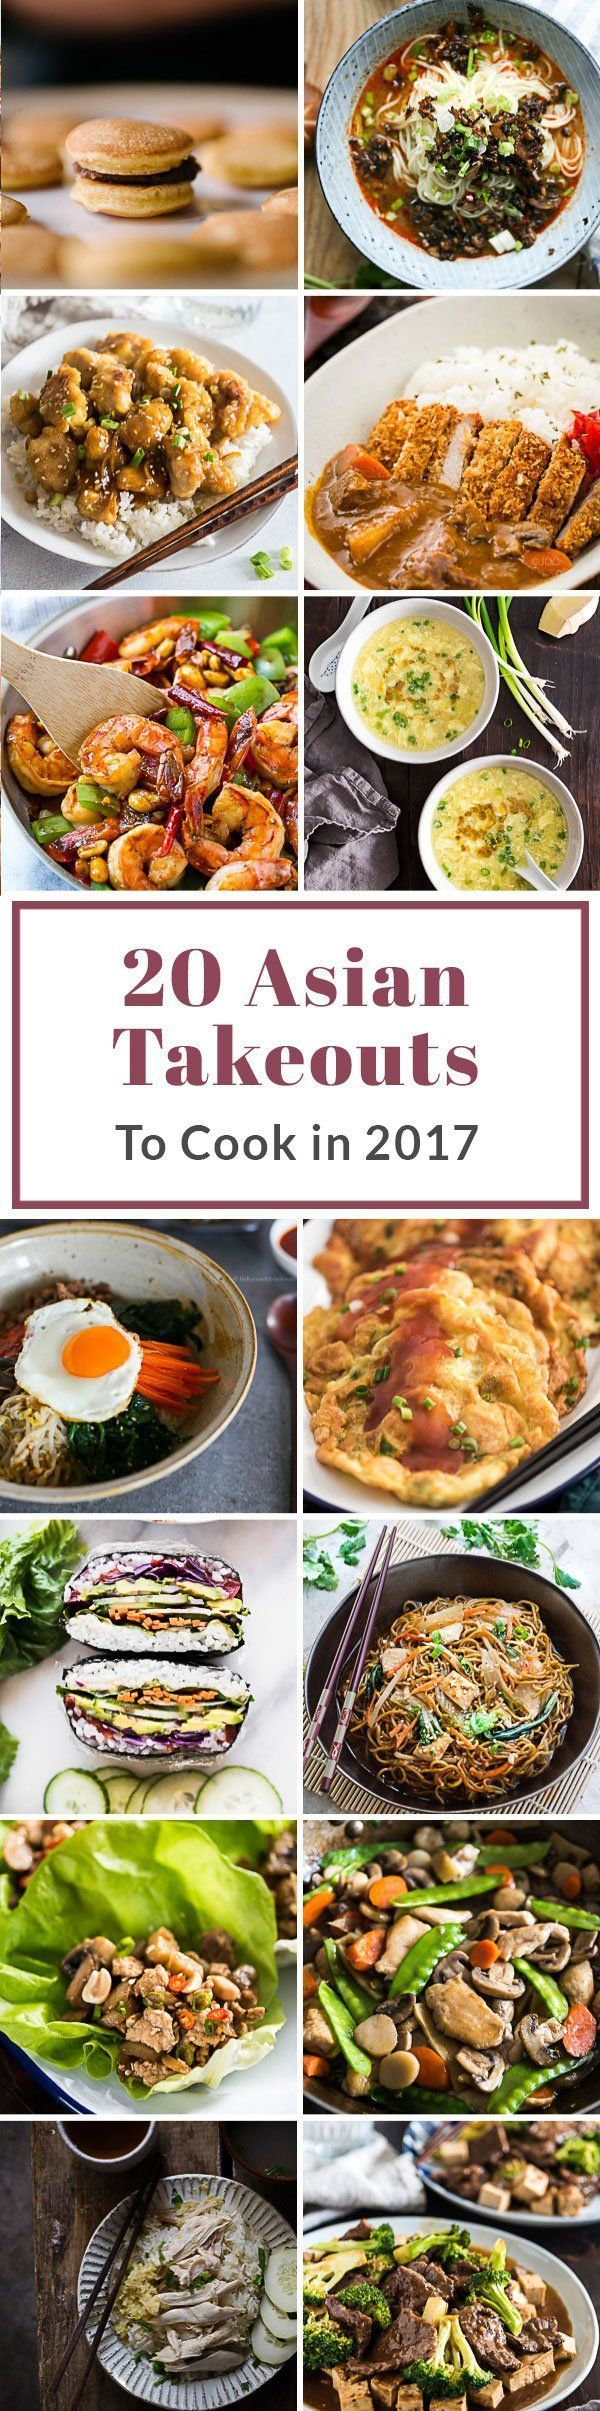 20 Healthy Asian Takeout Recipes You Should Cook In 2017